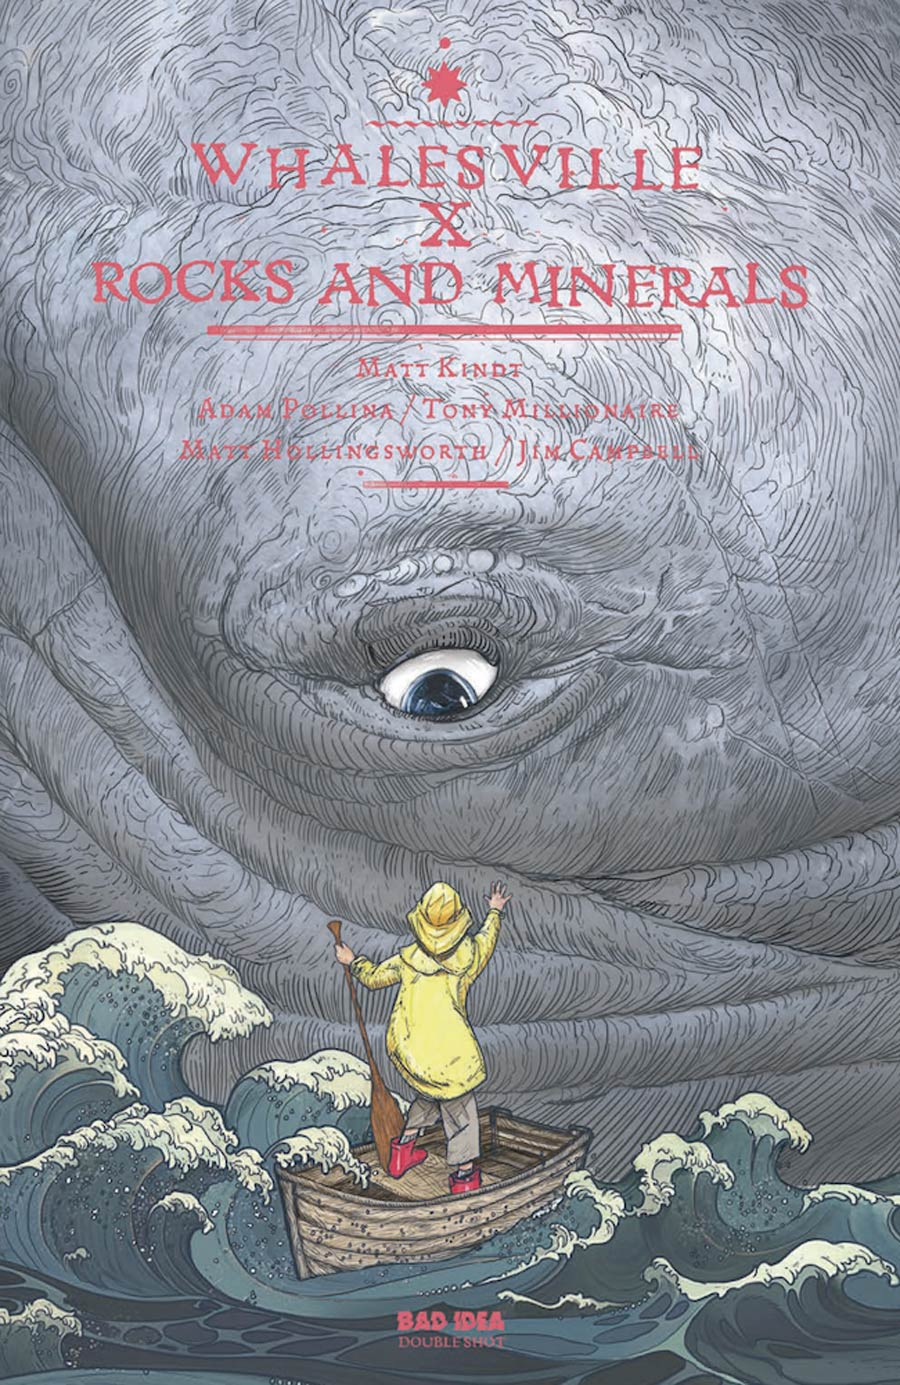 Whalesville x Rocks and Minerals #1 (One Shot) Cover B Not First Printing (Red Logo)(Limit 1 Per Customer)